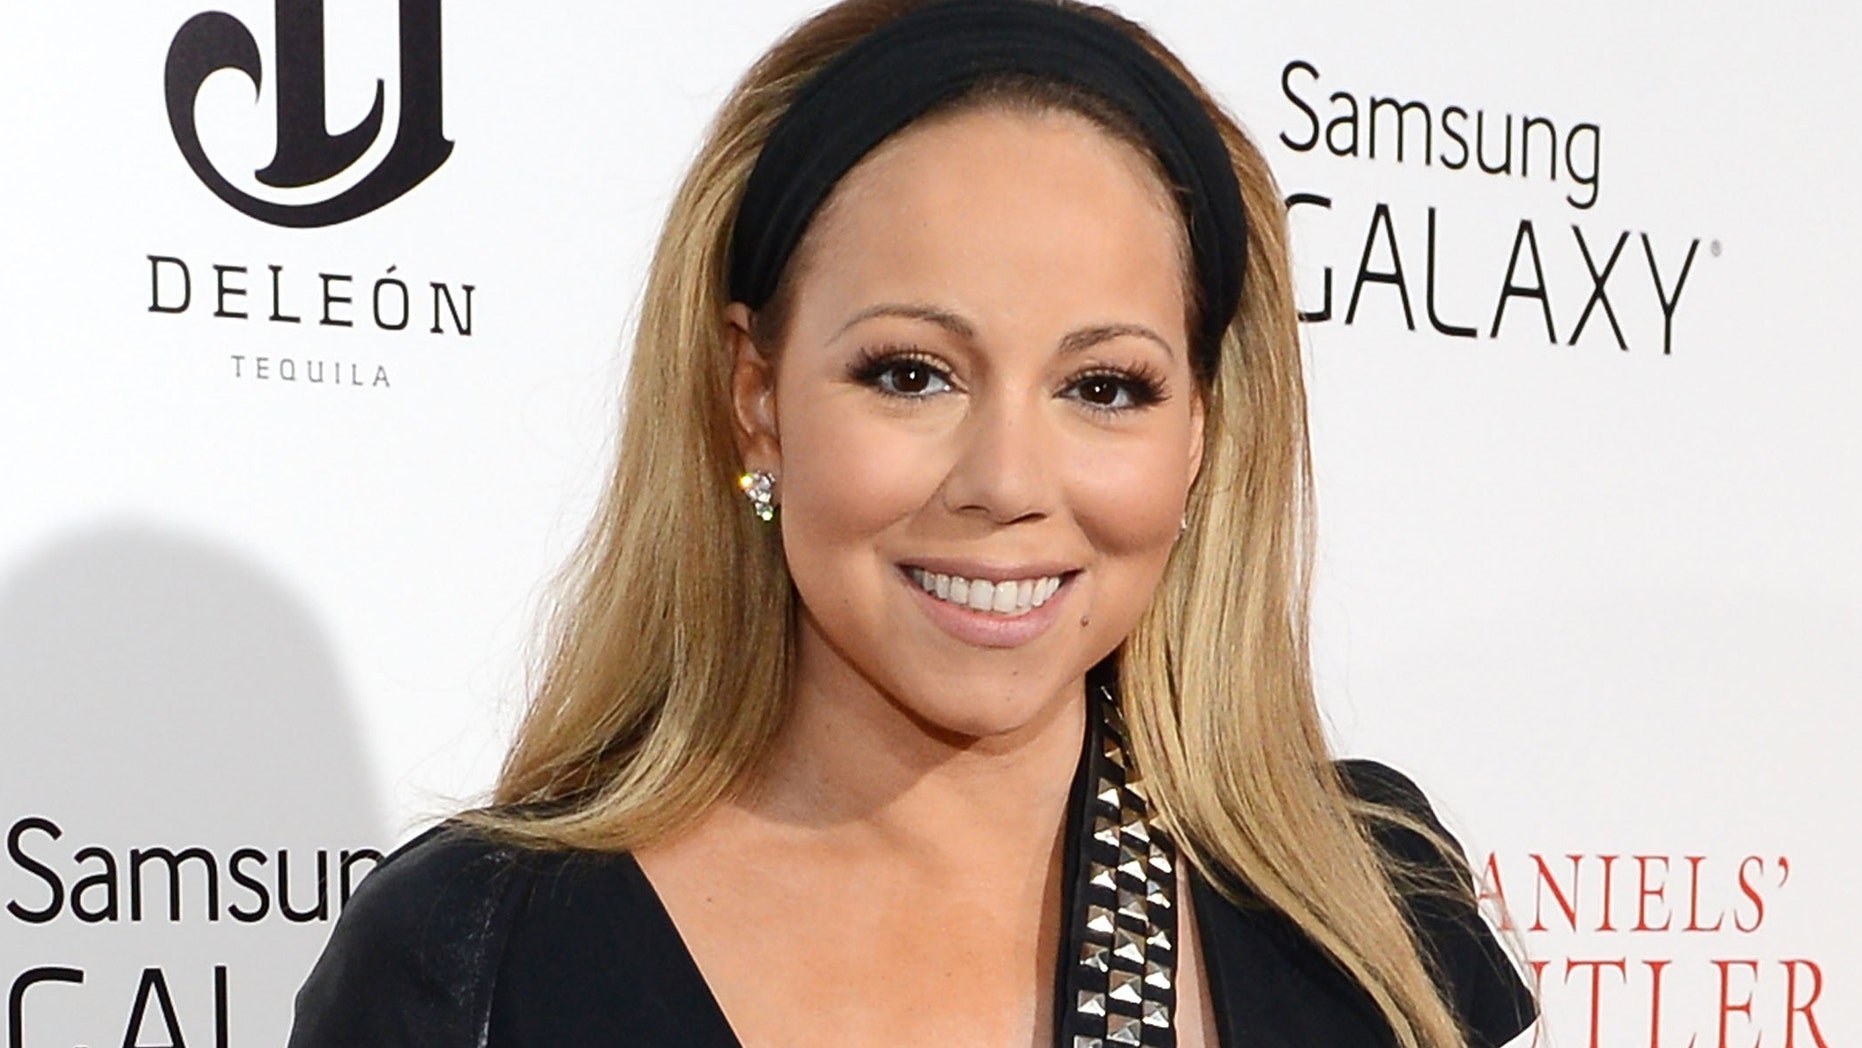 """NEW YORK, NY - AUGUST 05:  Mariah Carey attends Lee Daniels' """"The Butler"""" New York premiere, hosted by TWC, DeLeon Tequila and Samsung Galaxy on August 5, 2013 in New York City.  (Photo by Larry Busacca/Getty Images for The Weinstein Company)"""